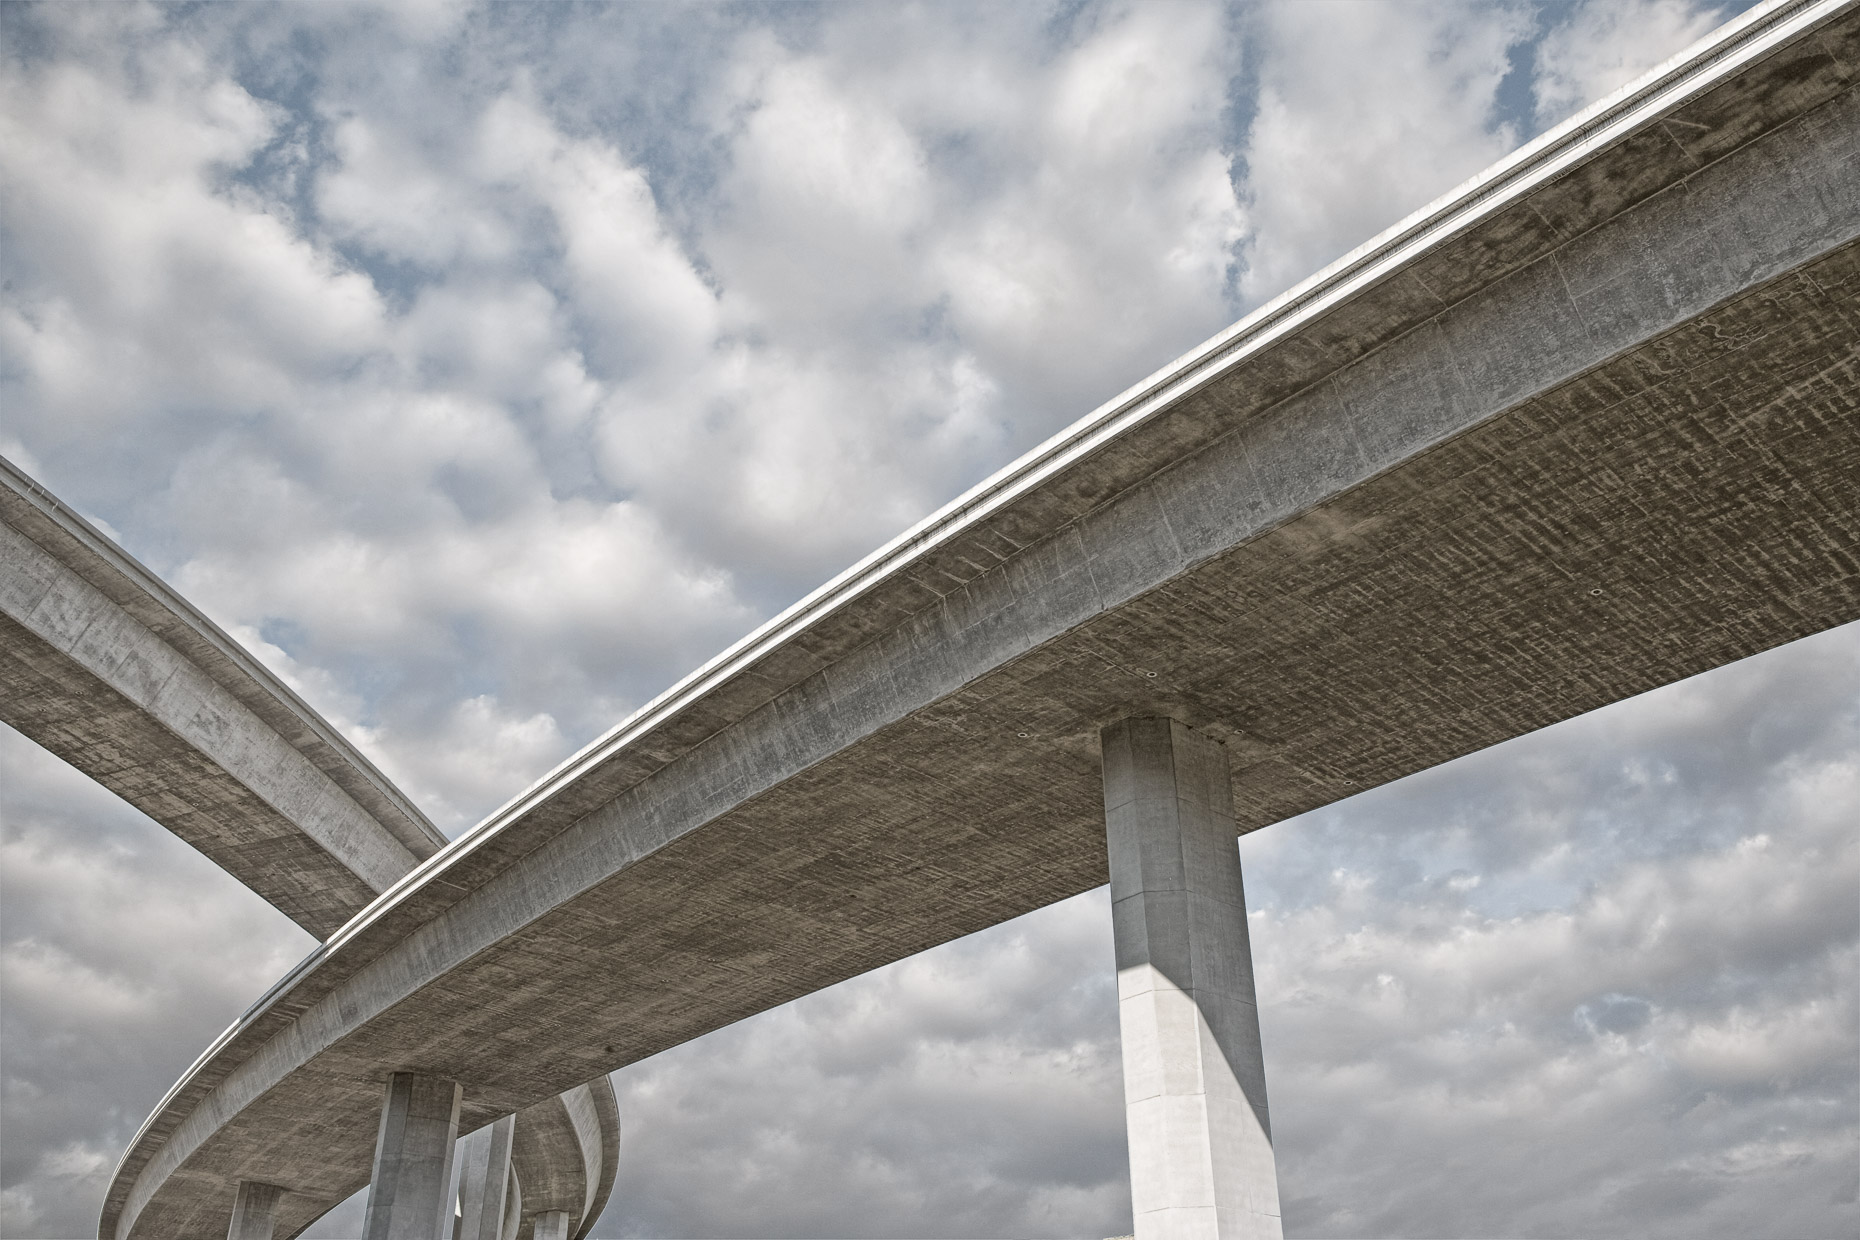 Concrete highway overpasses cross with cloudy sky background. David Zaitz Photography.